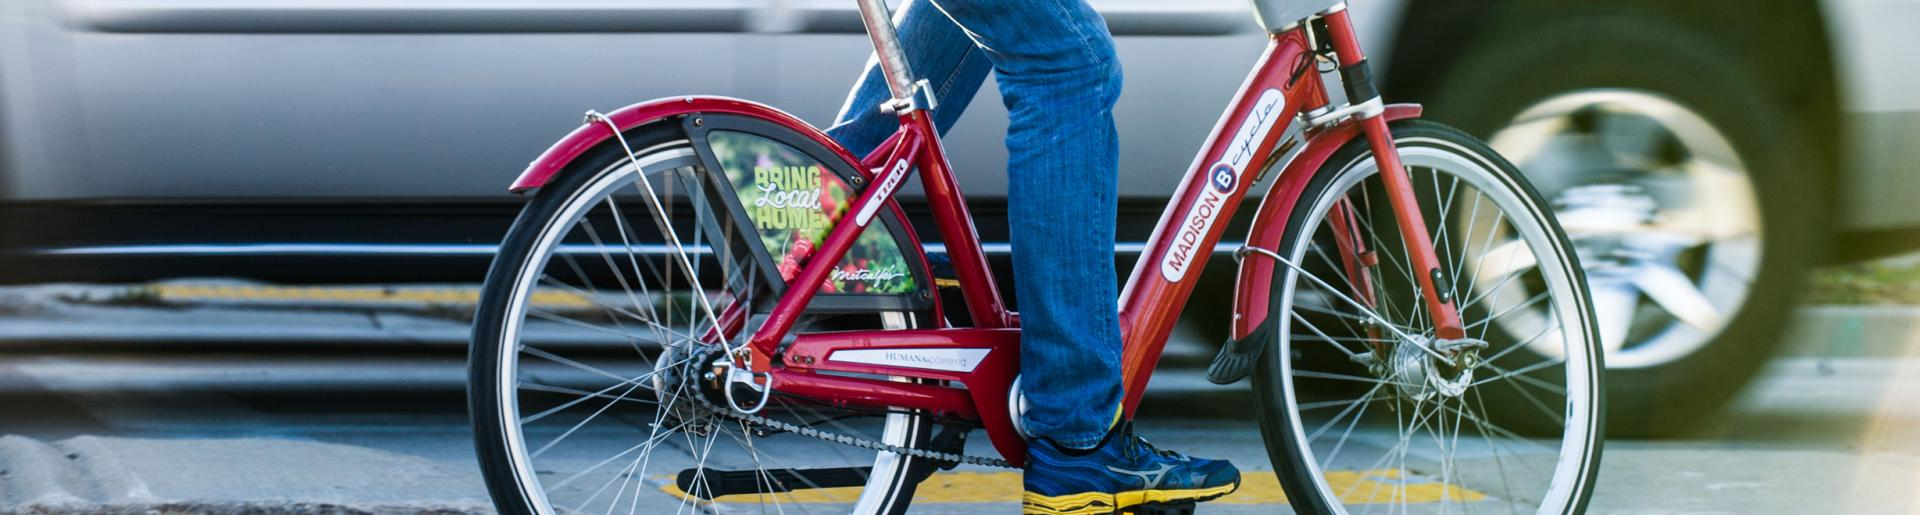 BCycle Red Bike